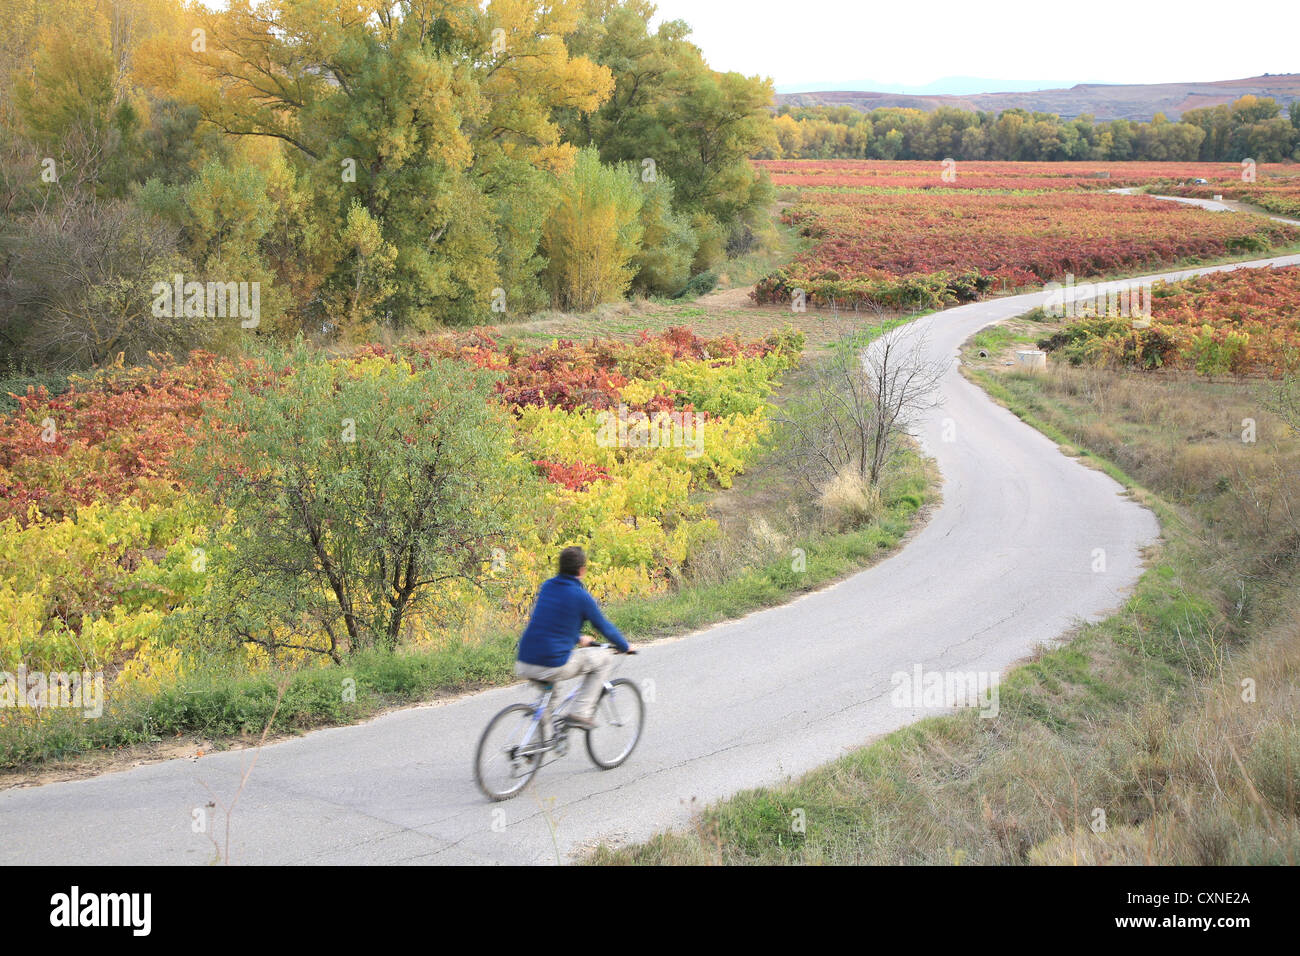 Autumn colors, Cycling in Rioja wine region, Spain, Europe, - Stock Image